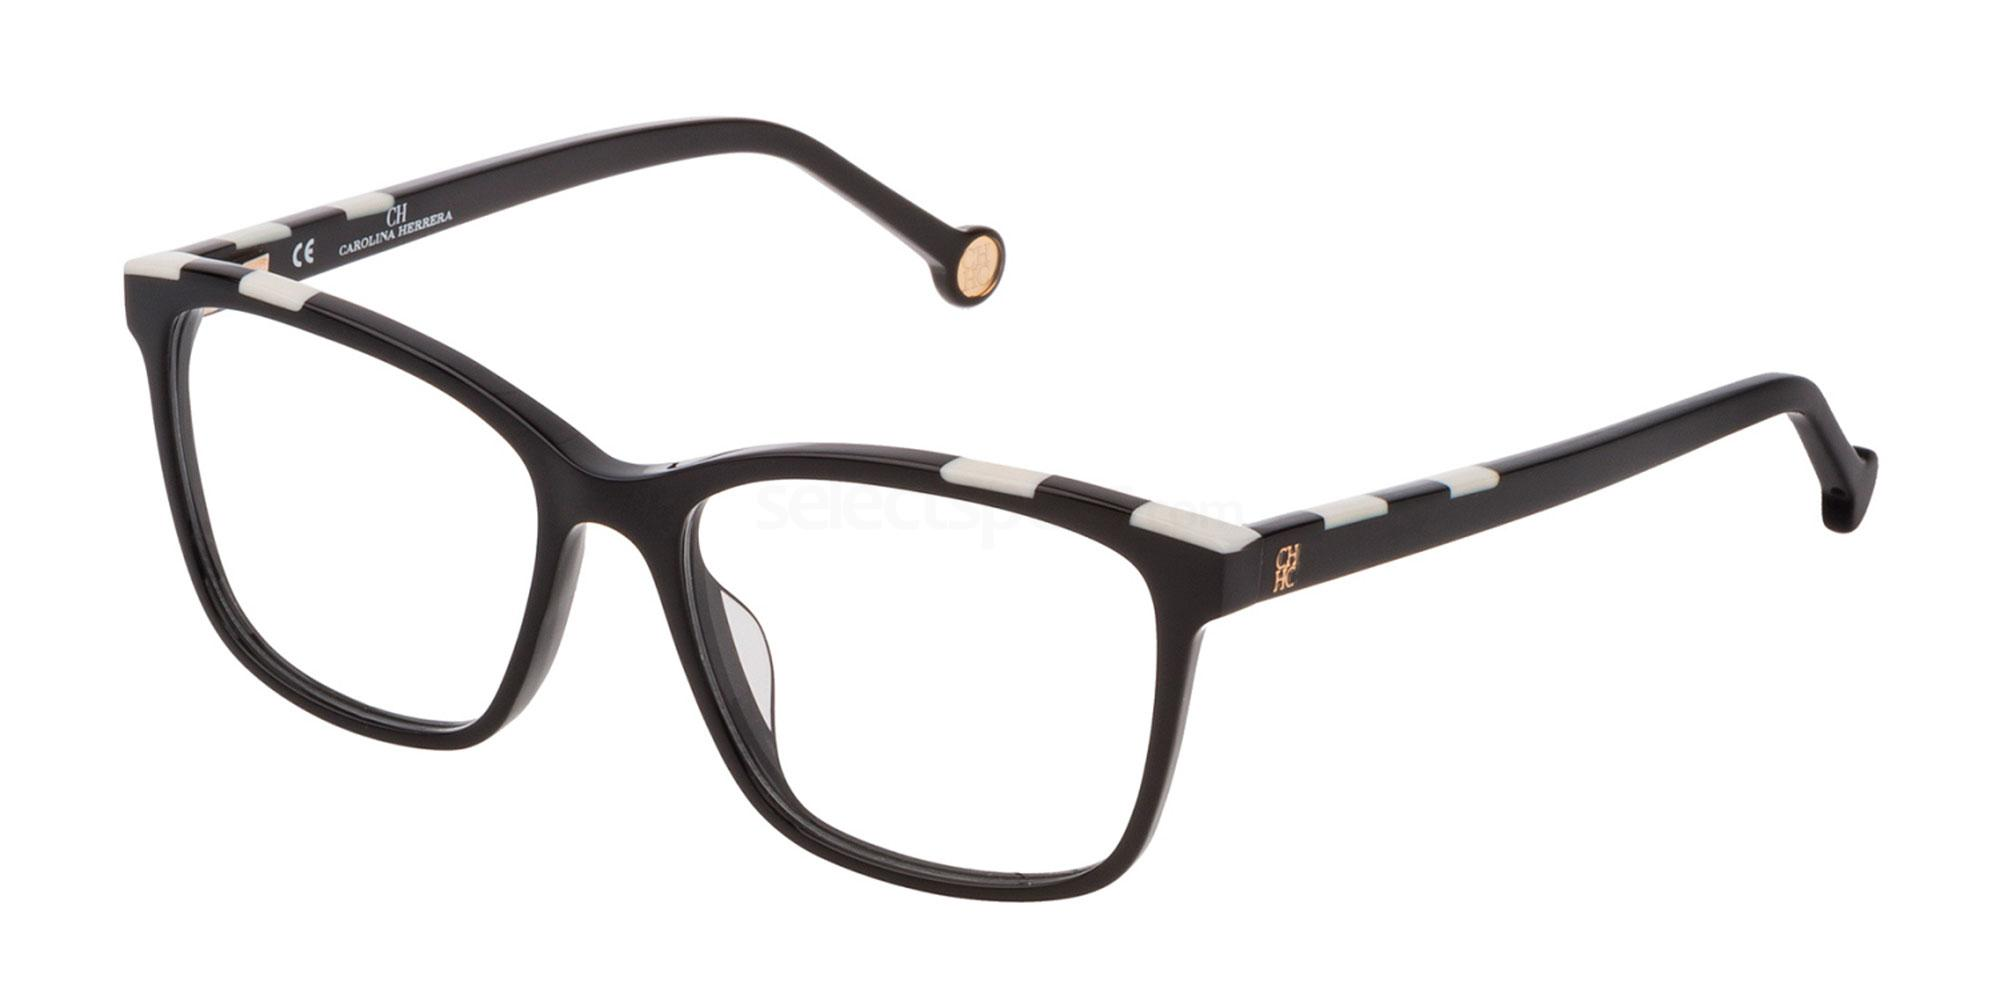 0700 VHE803 Glasses, CH Carolina Herrera